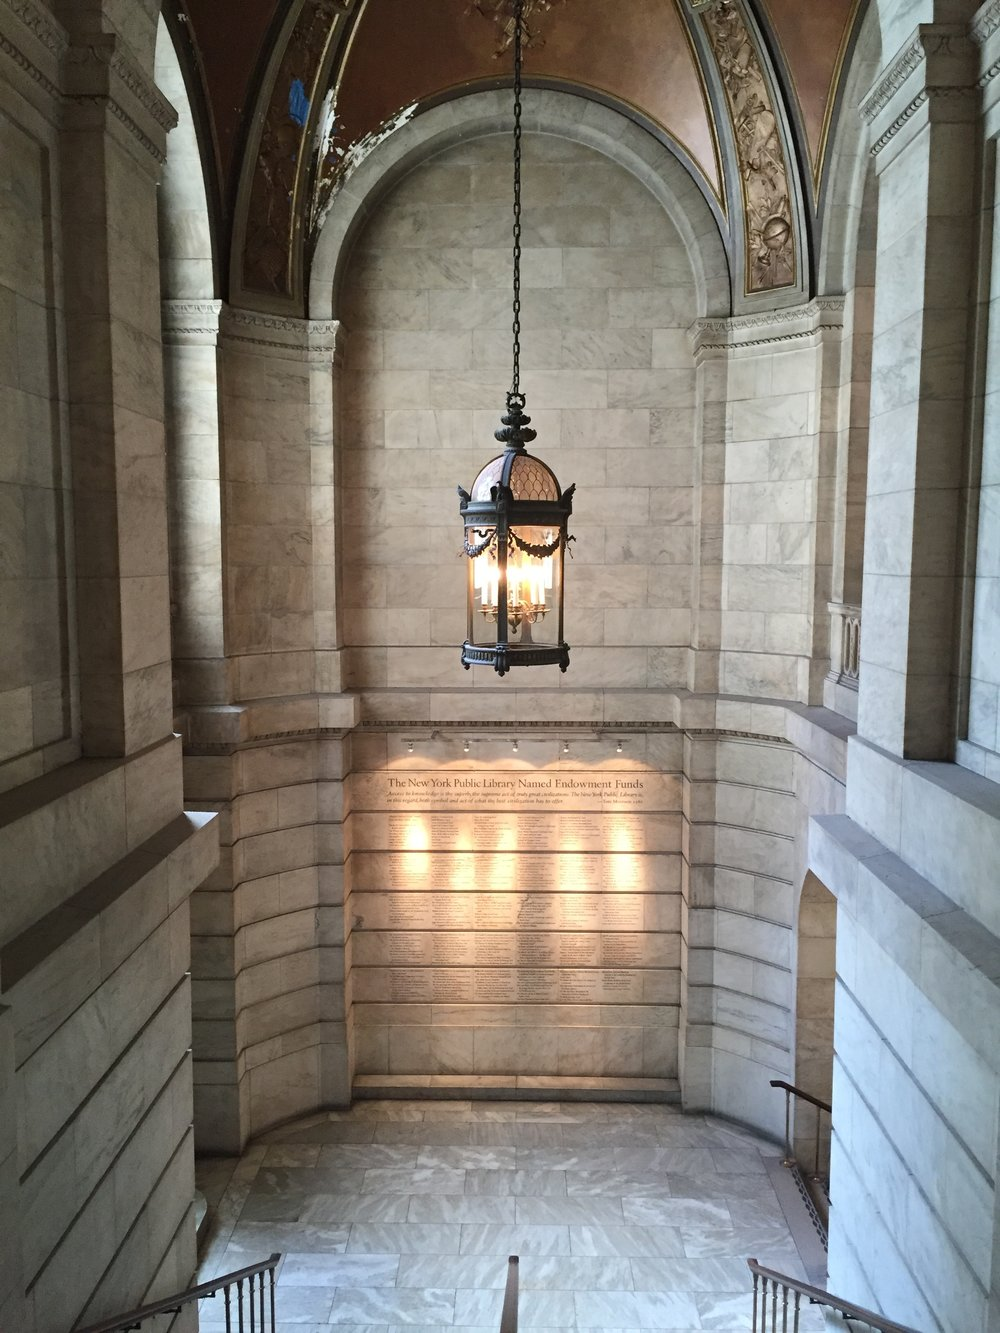 Just a glimpse of the architecture at the New York Public Library.